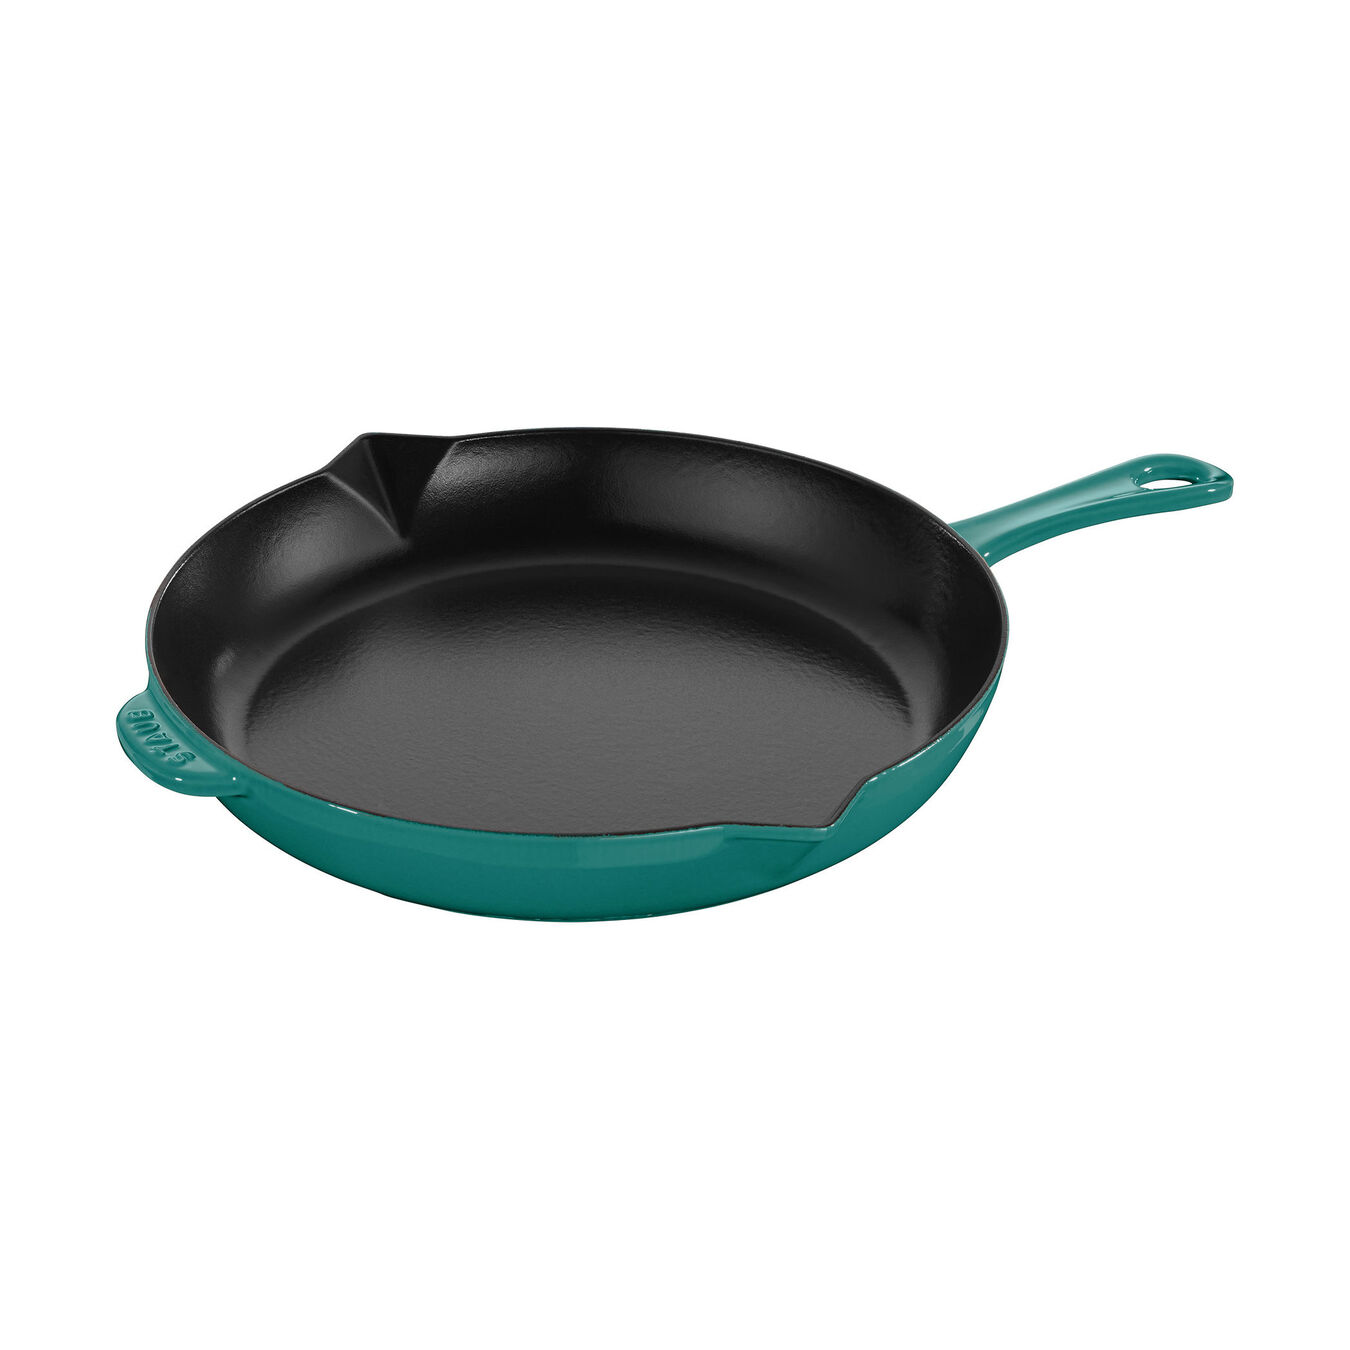 10-inch Fry Pan - Turquoise,,large 1